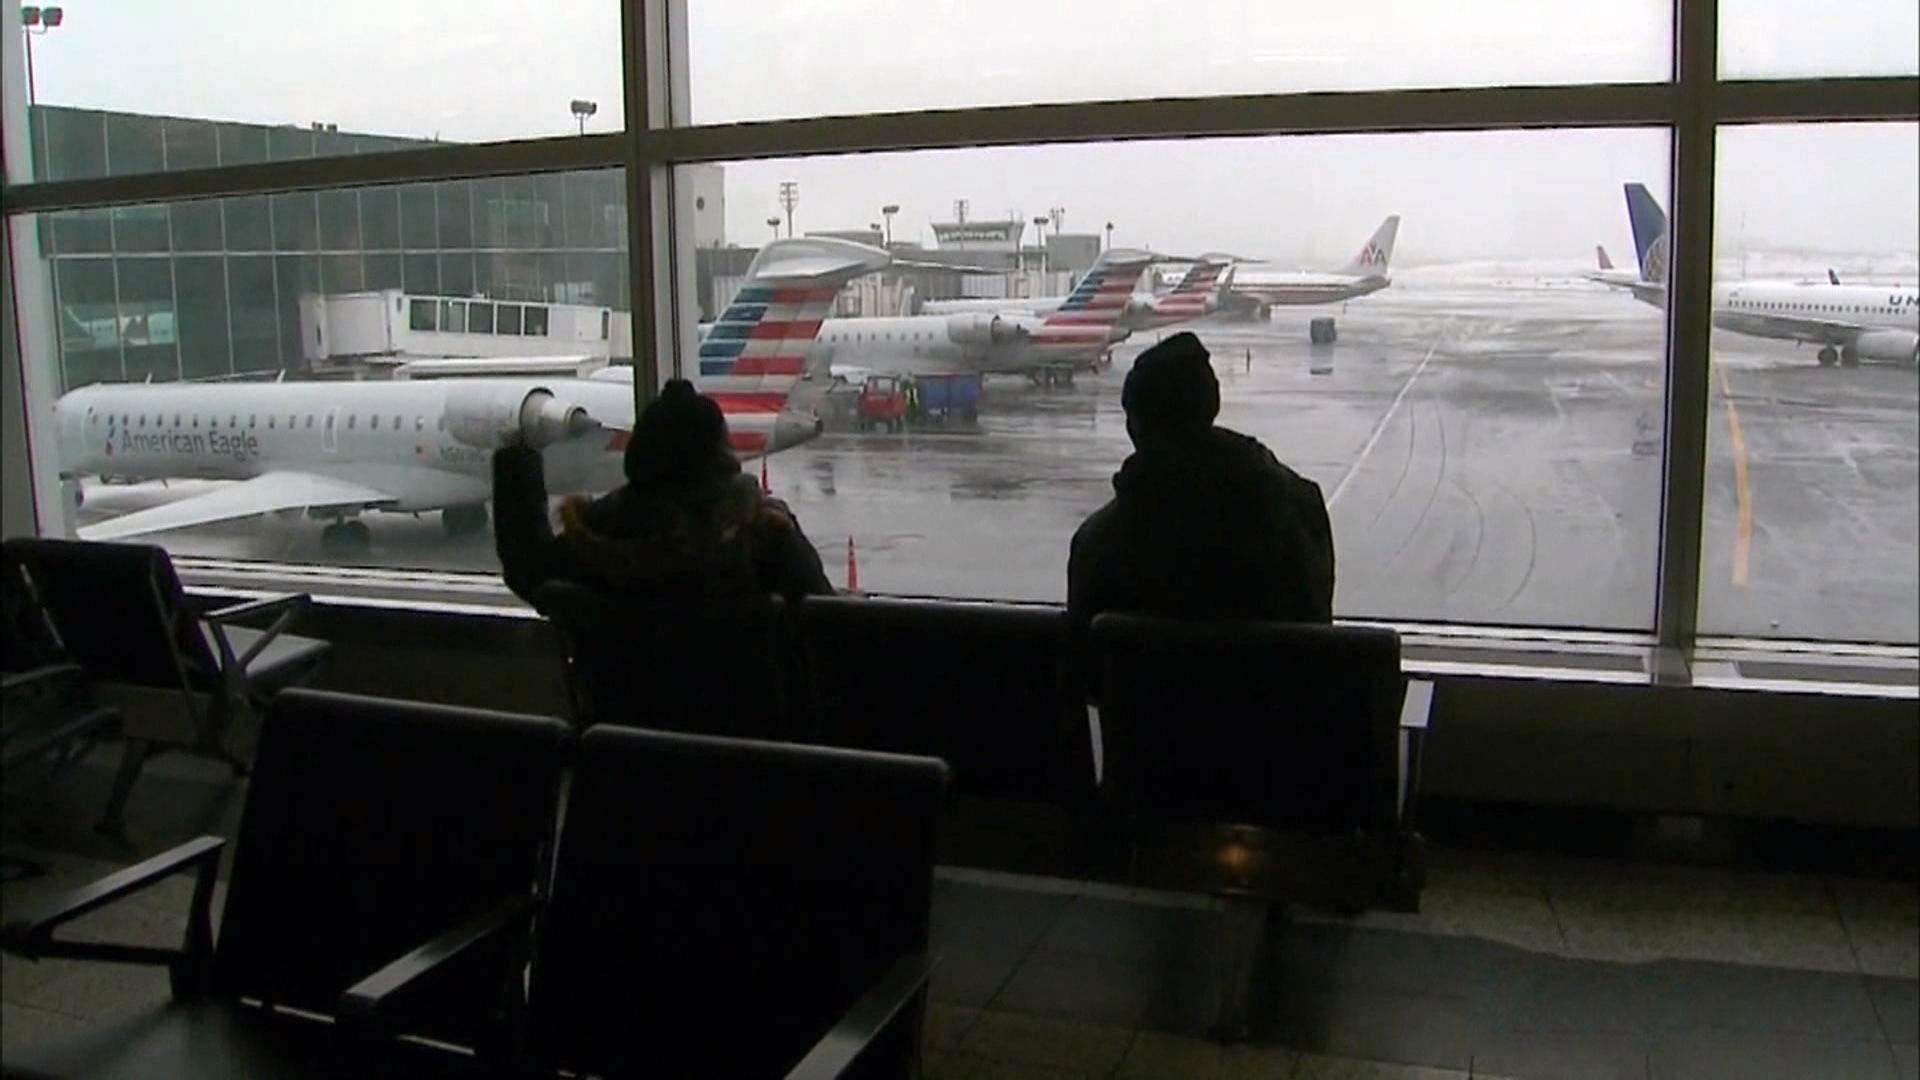 Why do airlines take so much time to return to normal after snowstorms?